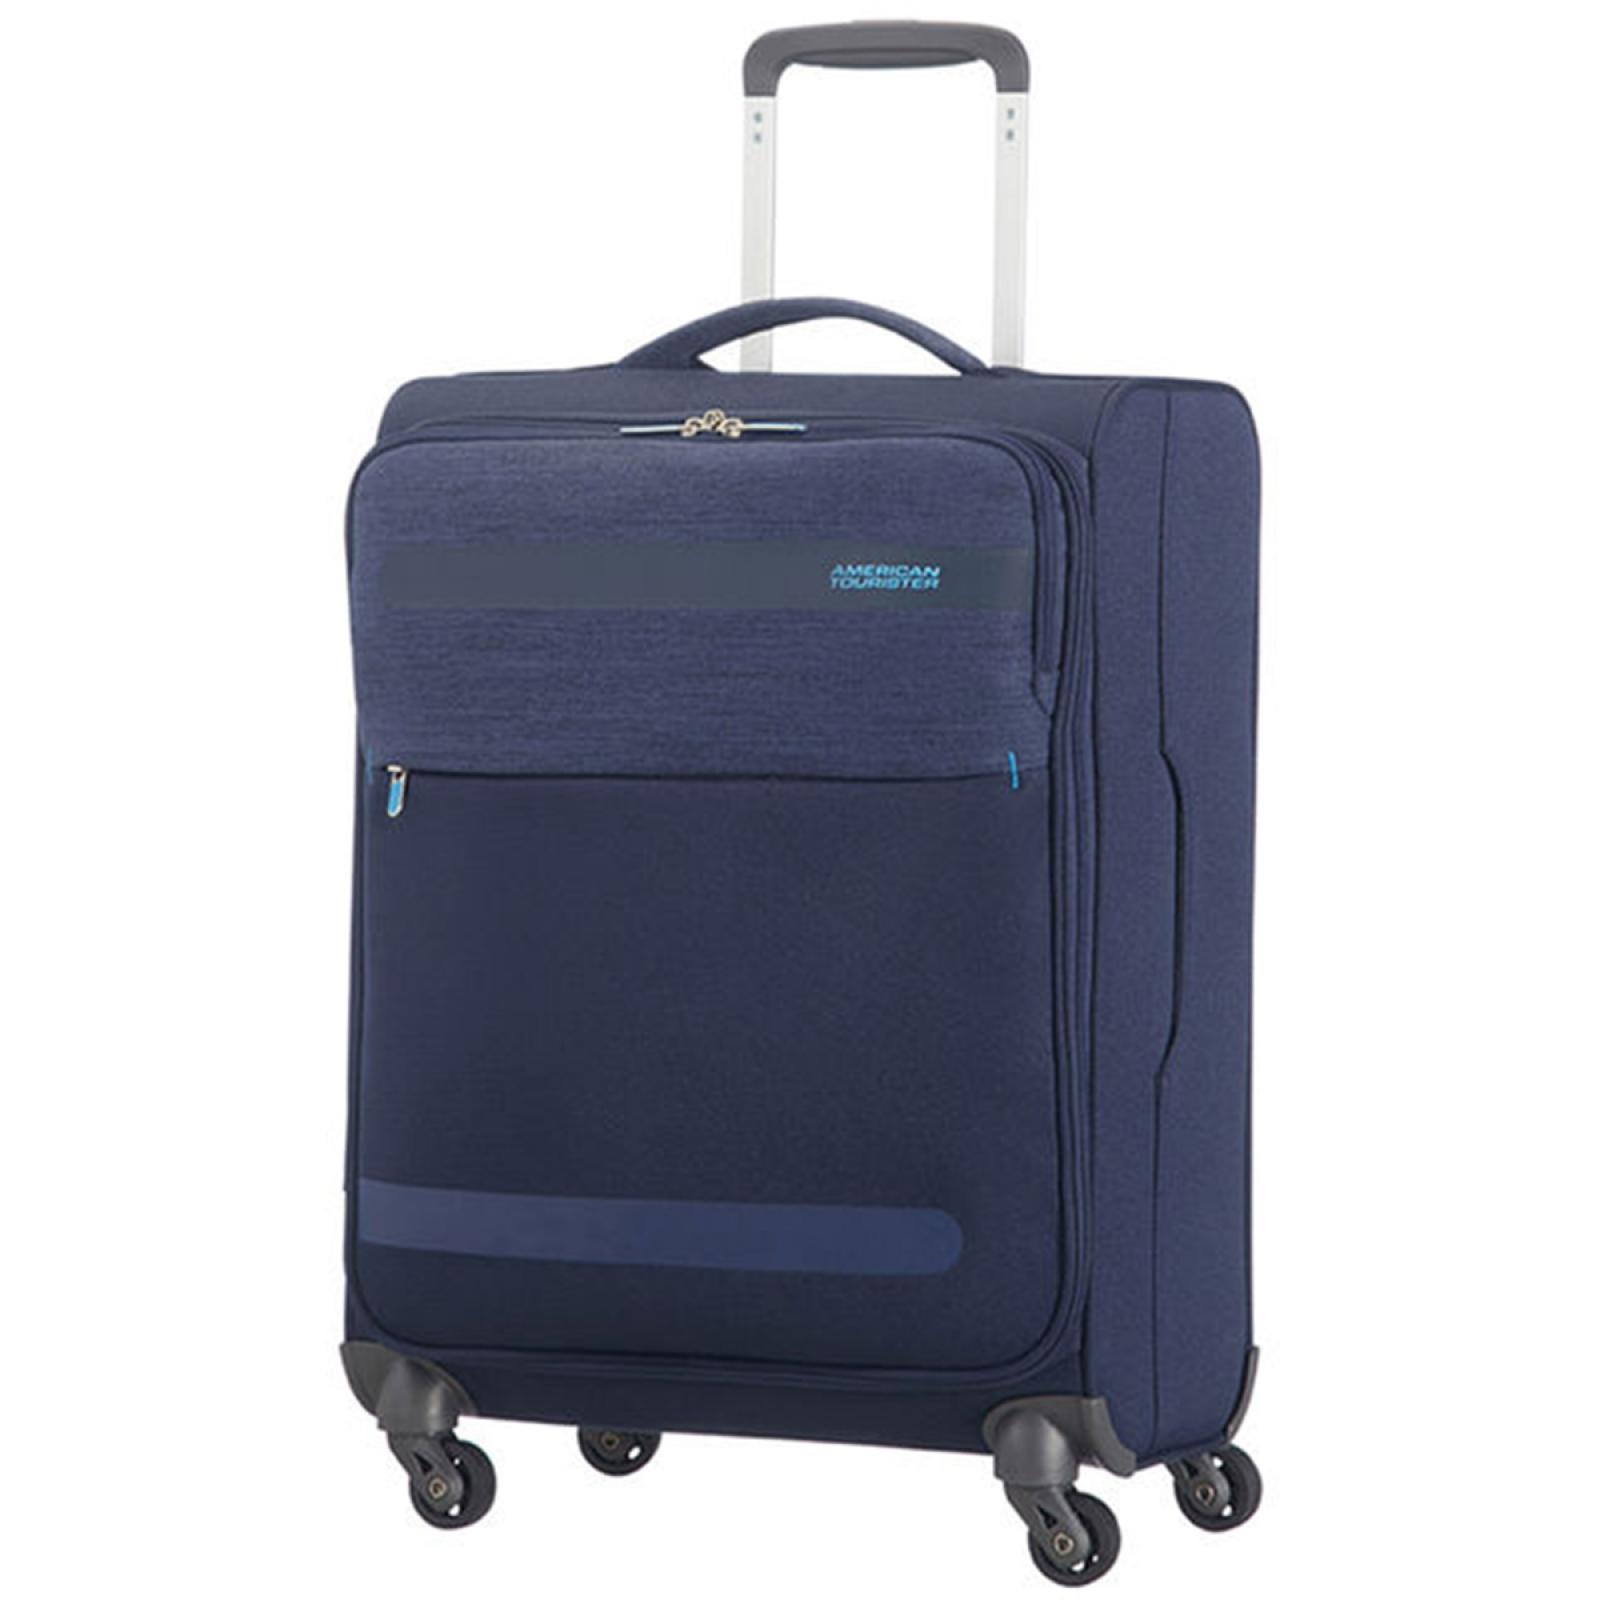 American Tourister Bagaglio a Mano Herolite Lifestyle Spinner 55 cm - NAVY